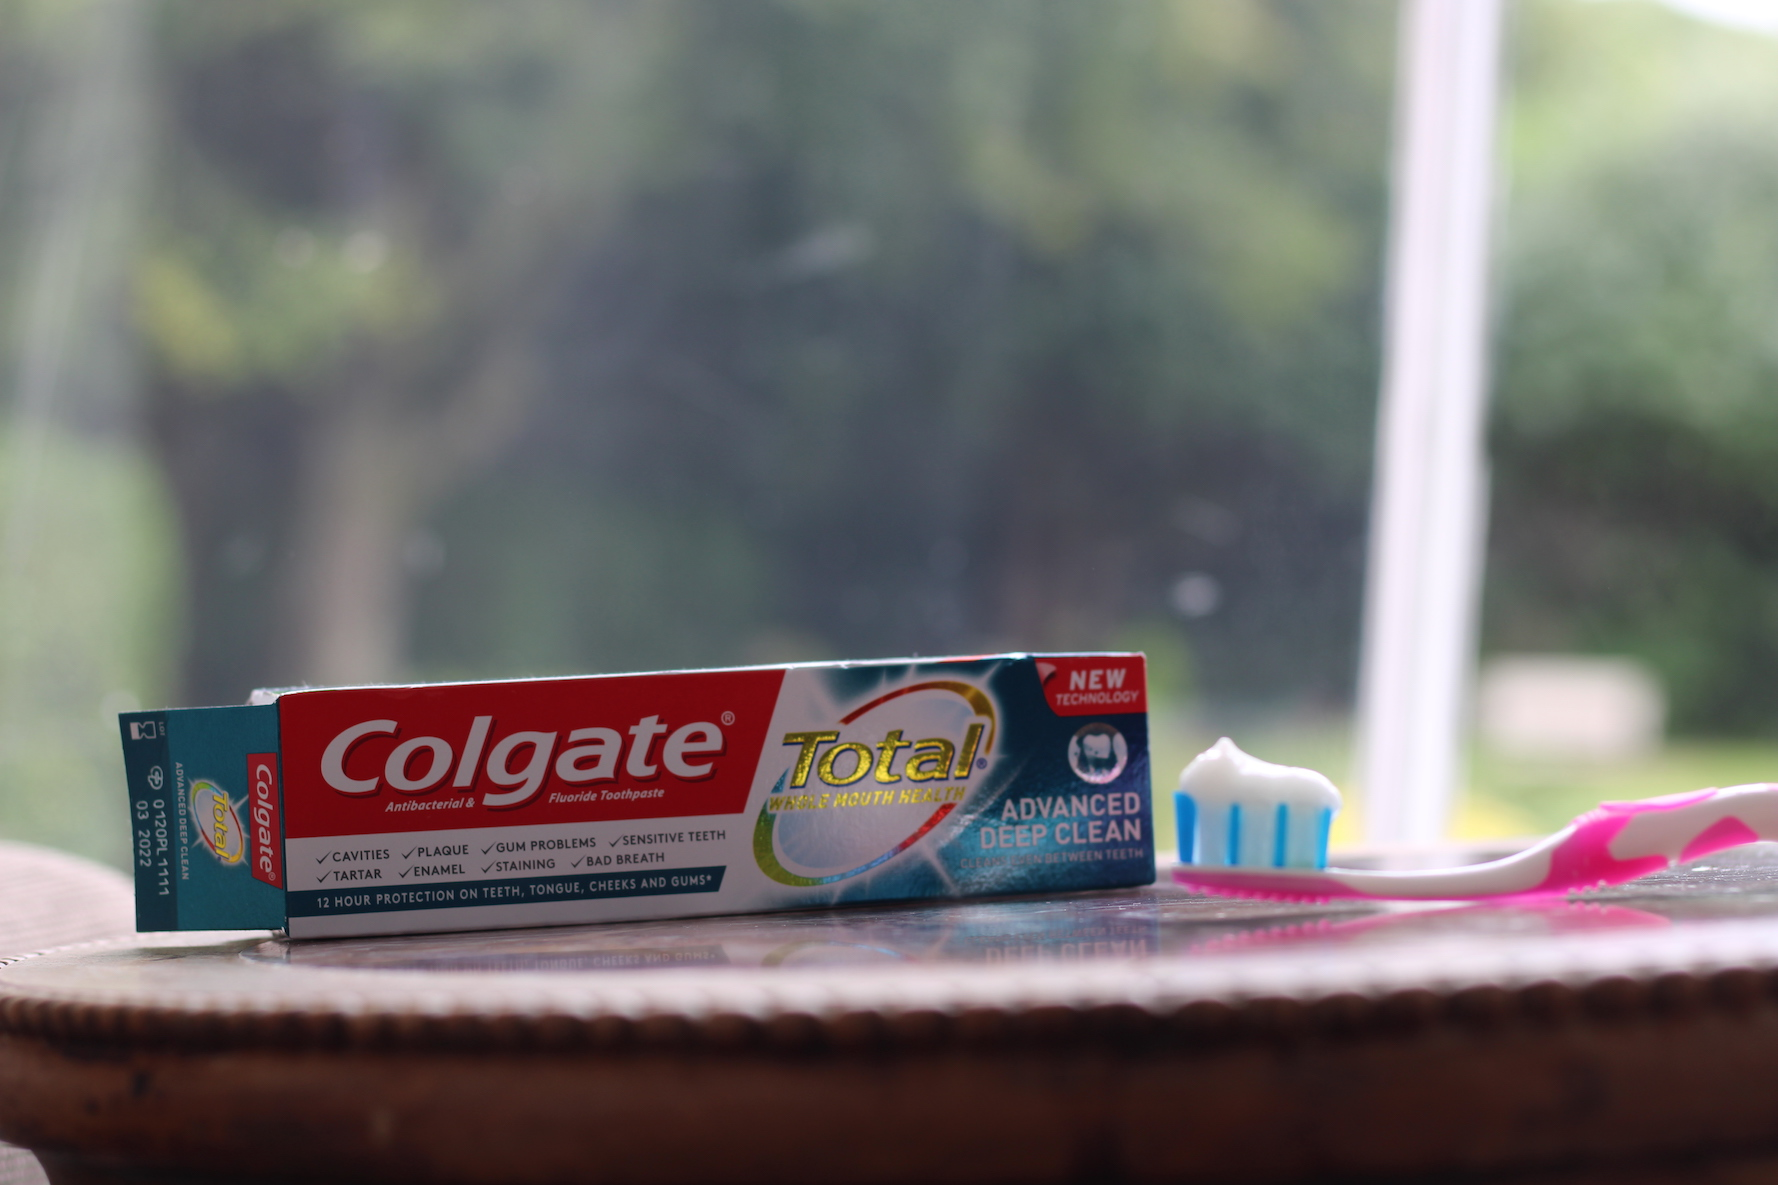 An image taken by myself and used in a recent post collaboration with popular brand Colgate